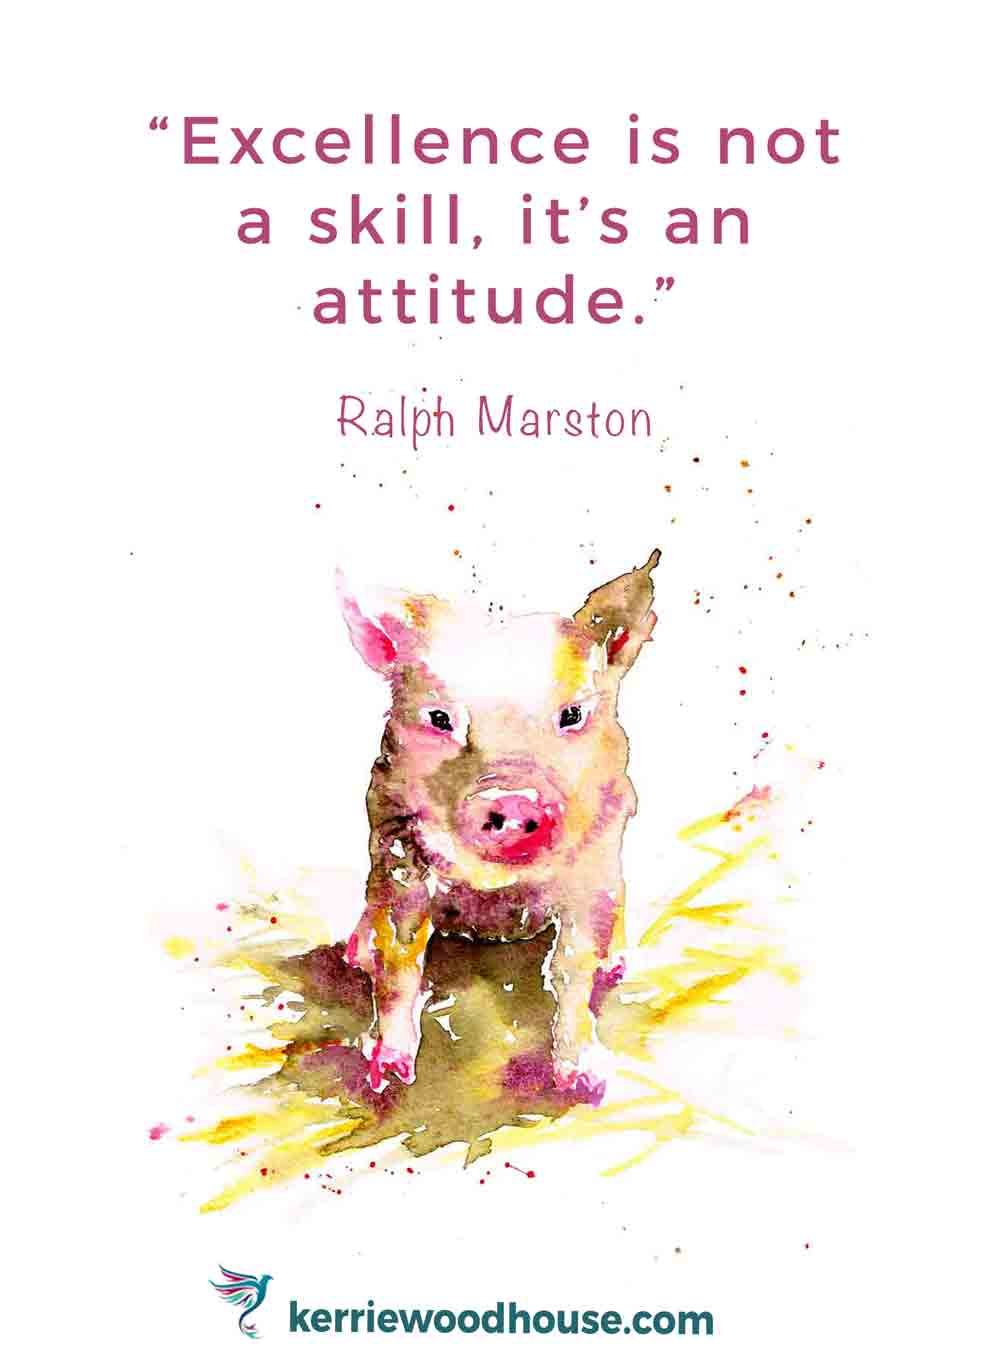 Pinterest-template-quote-for-Pigs-excellence-kw.jpg